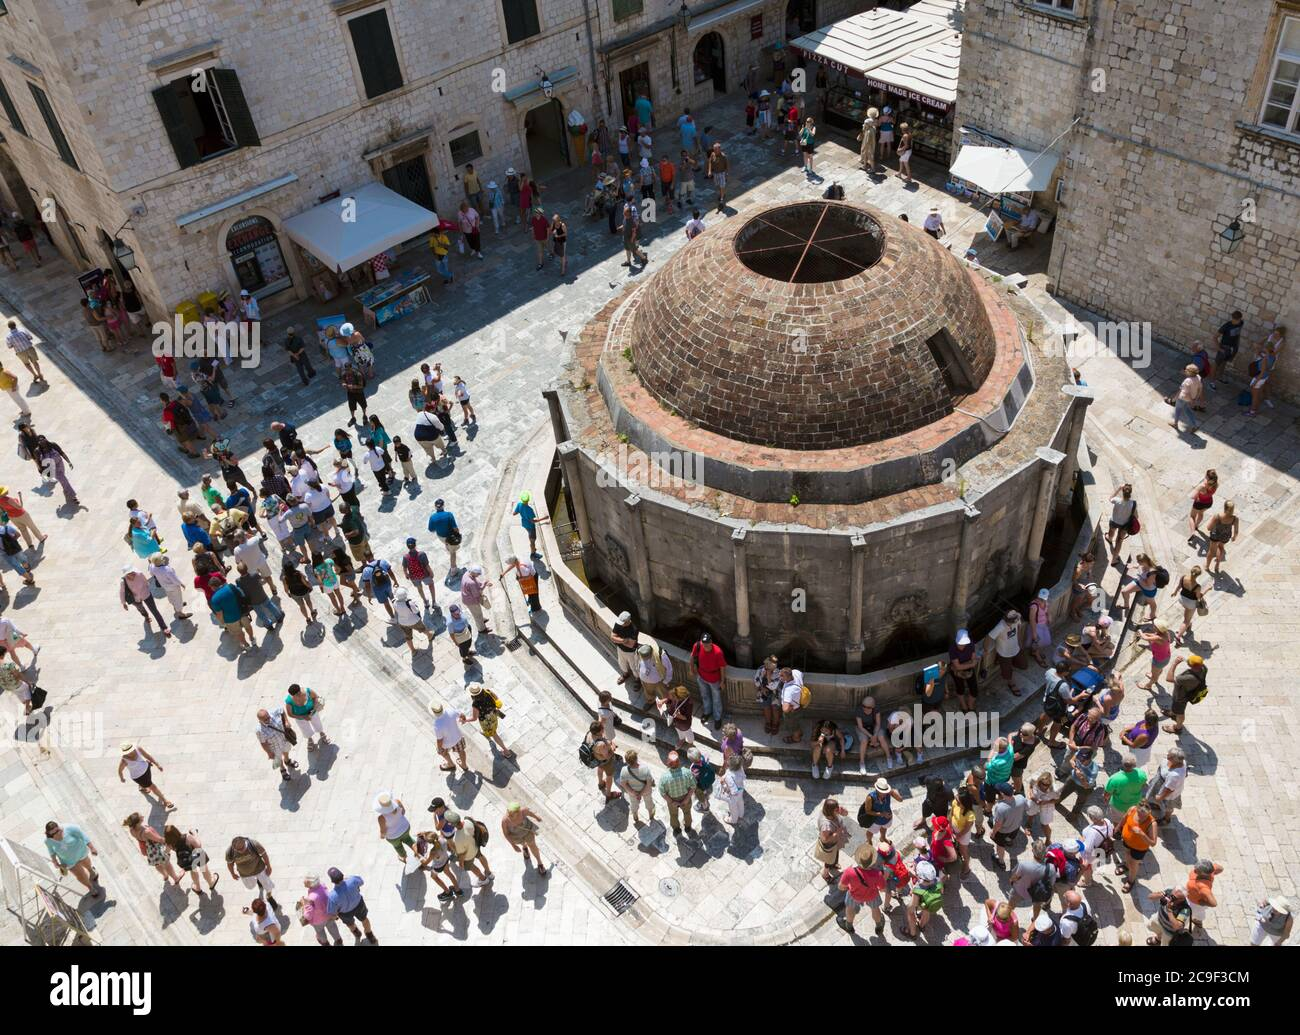 Dubrovnik, Dubrovnik-Neretva County, Croatia.  The Big Fountain of Onofrio.  The old city of Dubrovnik is a UNESCO World Heritage Site. Stock Photo